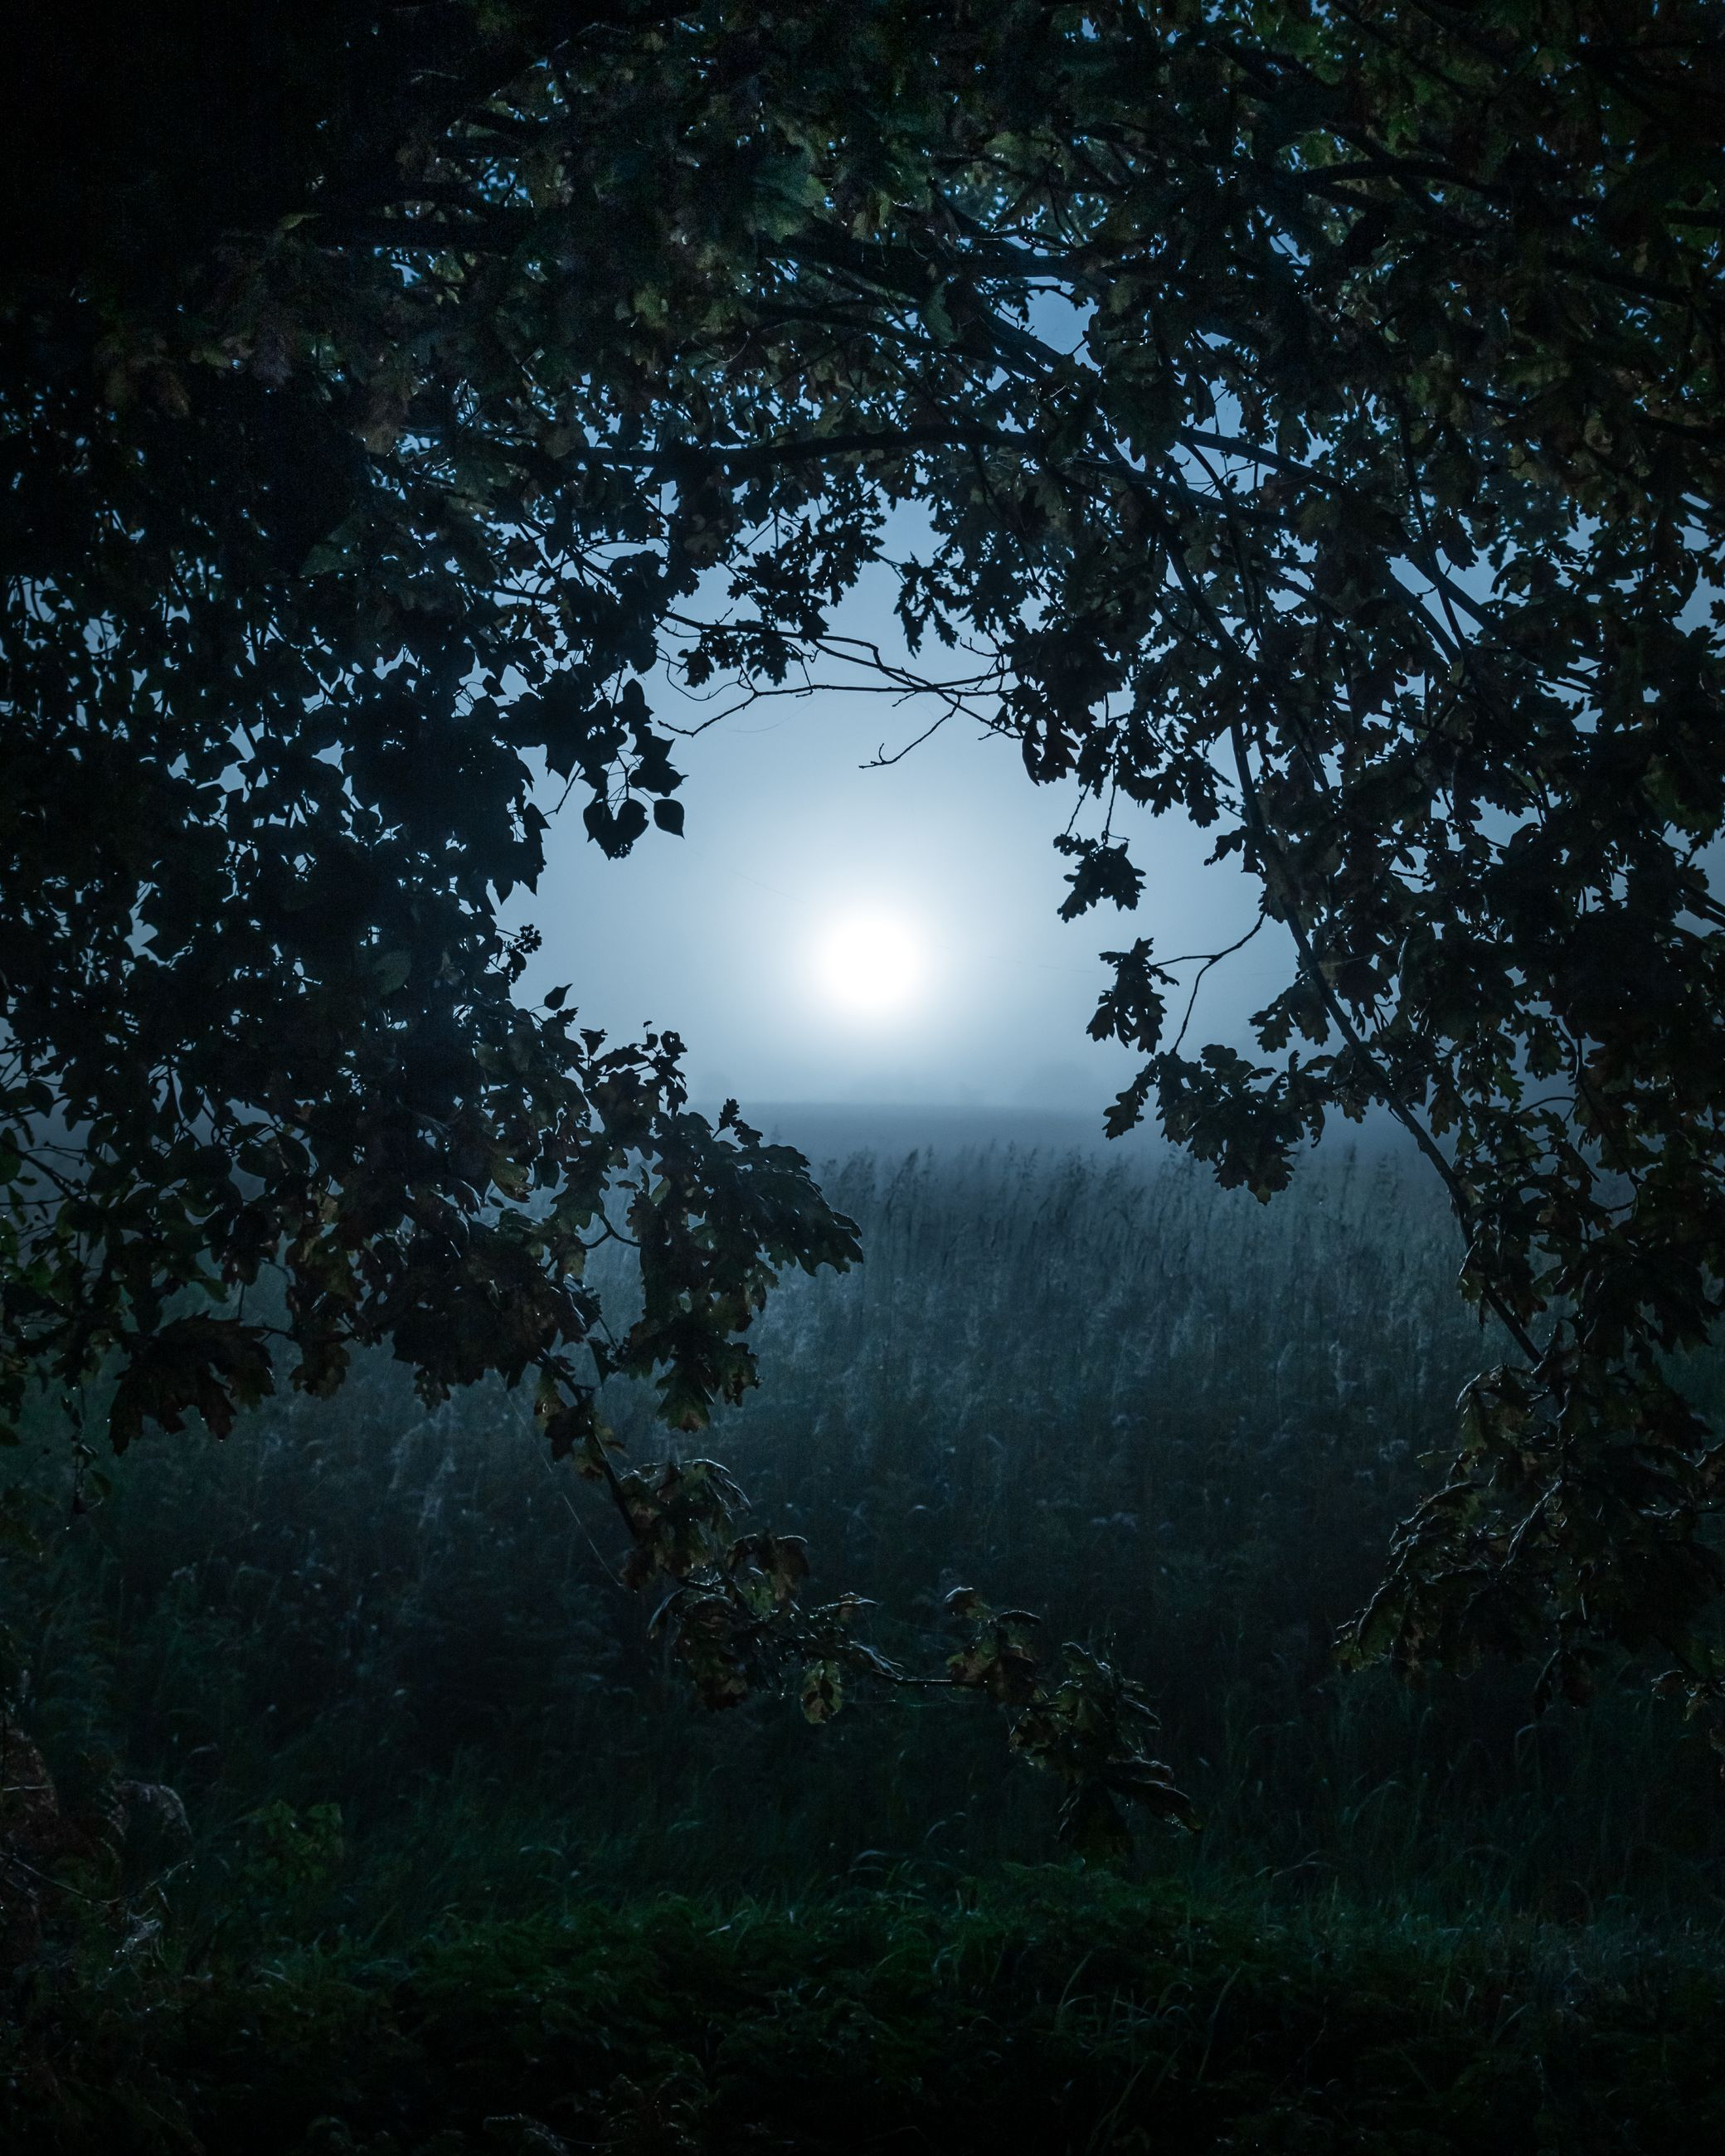 tree, plant, darkness, moonlight, night, light, moon, nature, full moon, sky, tranquility, beauty in nature, land, no people, scenics - nature, forest, astronomical object, tranquil scene, outdoors, reflection, environment, growth, dark, silhouette, astronomy, landscape, space, morning, branch, star